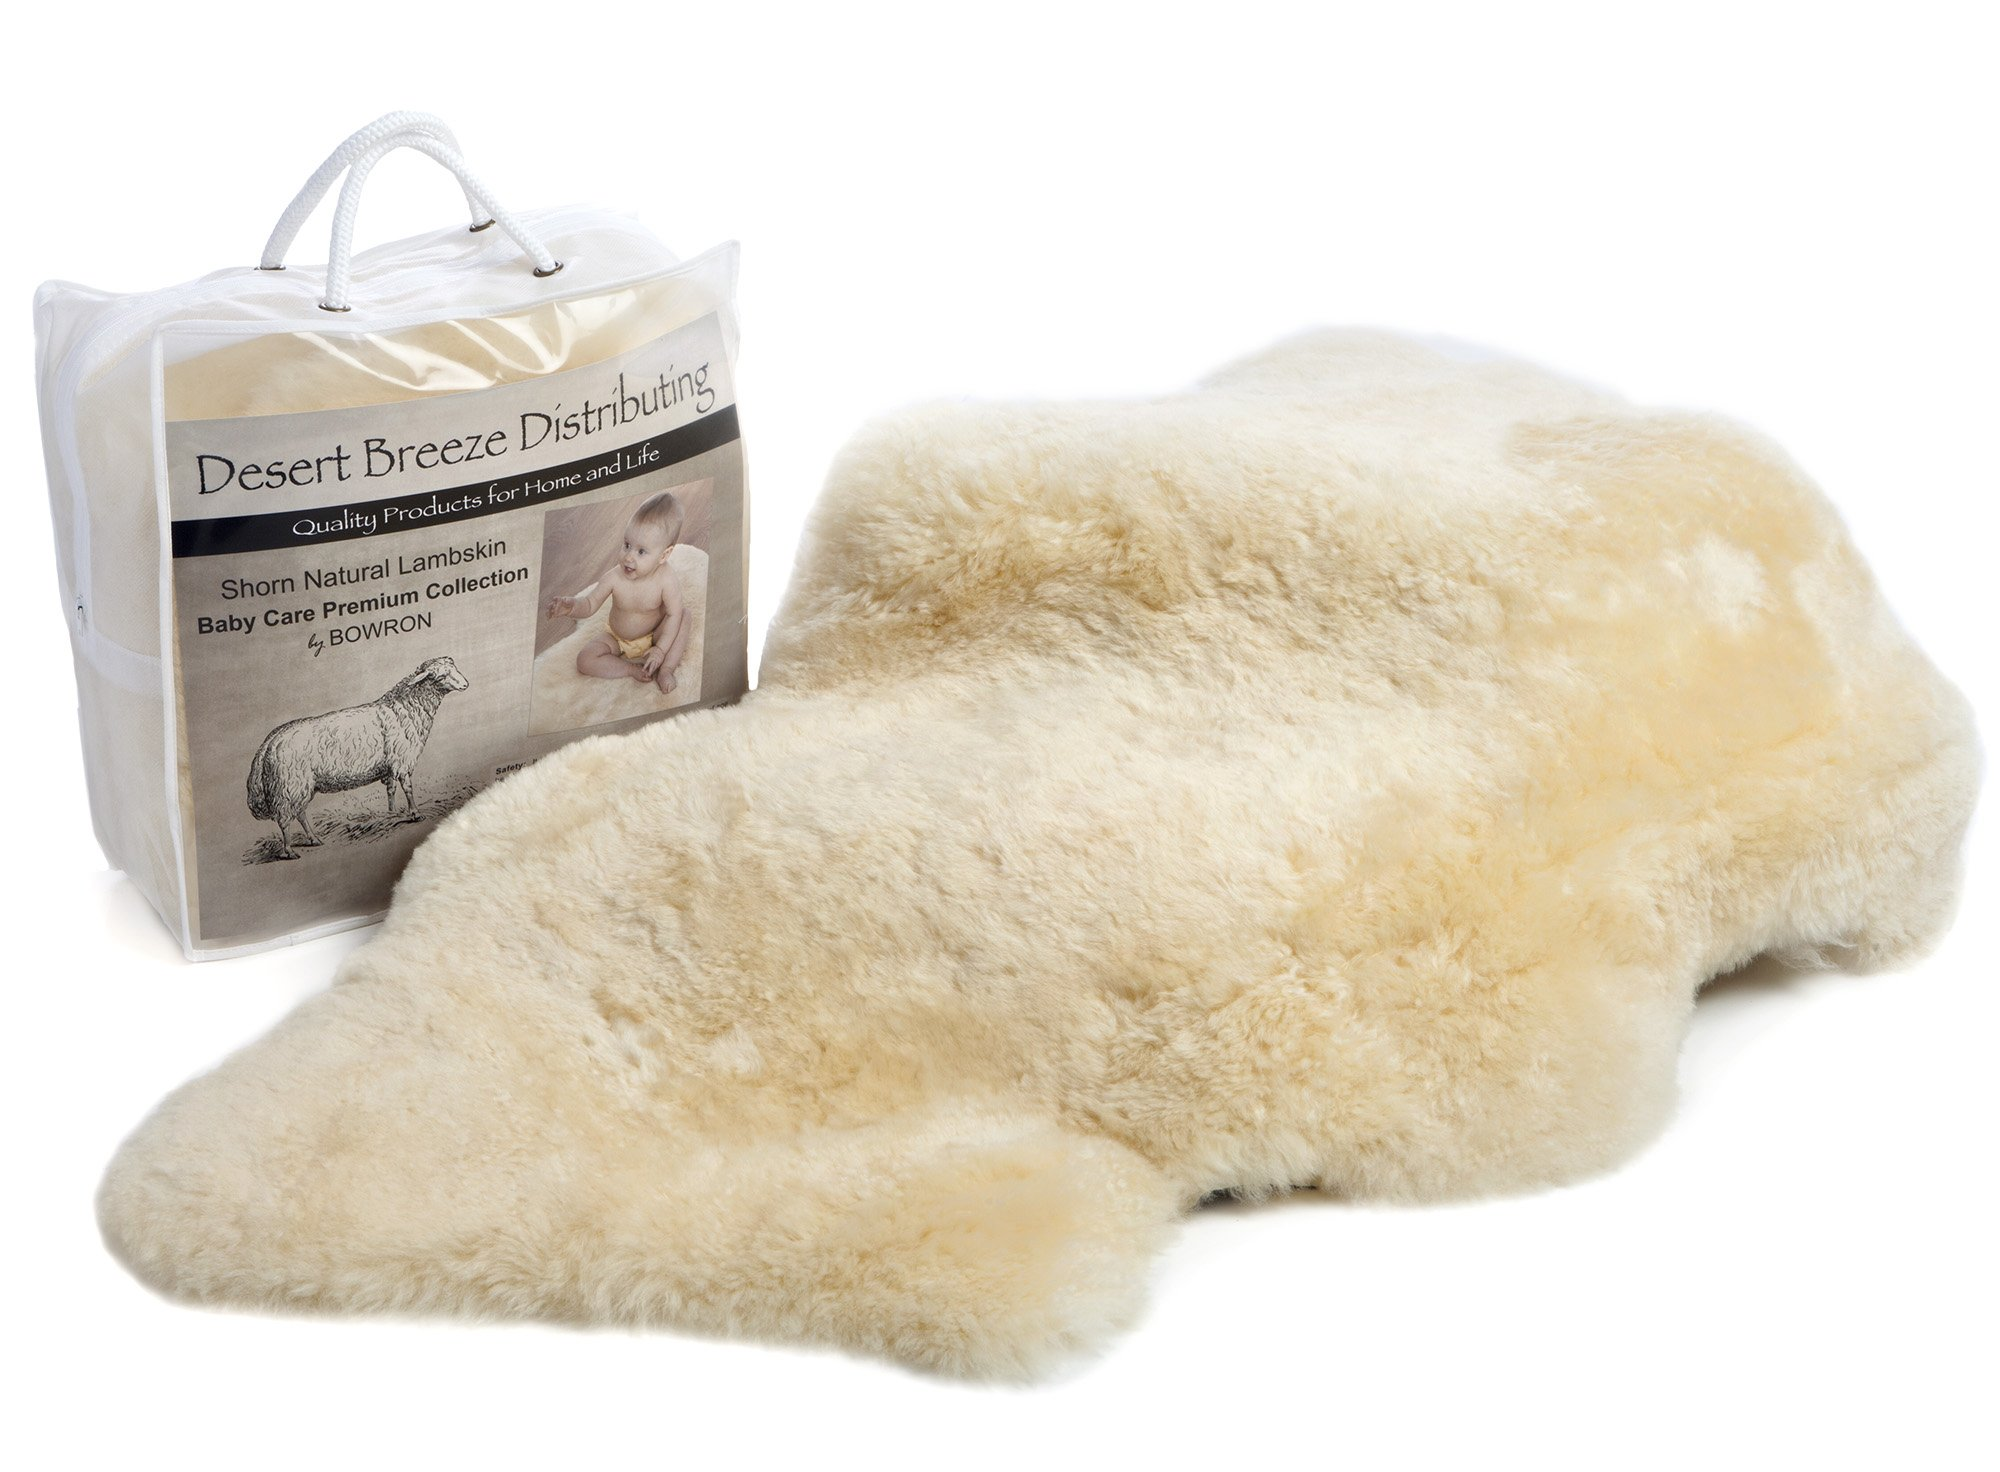 Classic New Zealand Sheepskin Baby Rug, 100% Natural, Washable, Silky Soft Short Wool, Large Size, Oeko-Tex and Woolmark Certified, Made in New Zealand